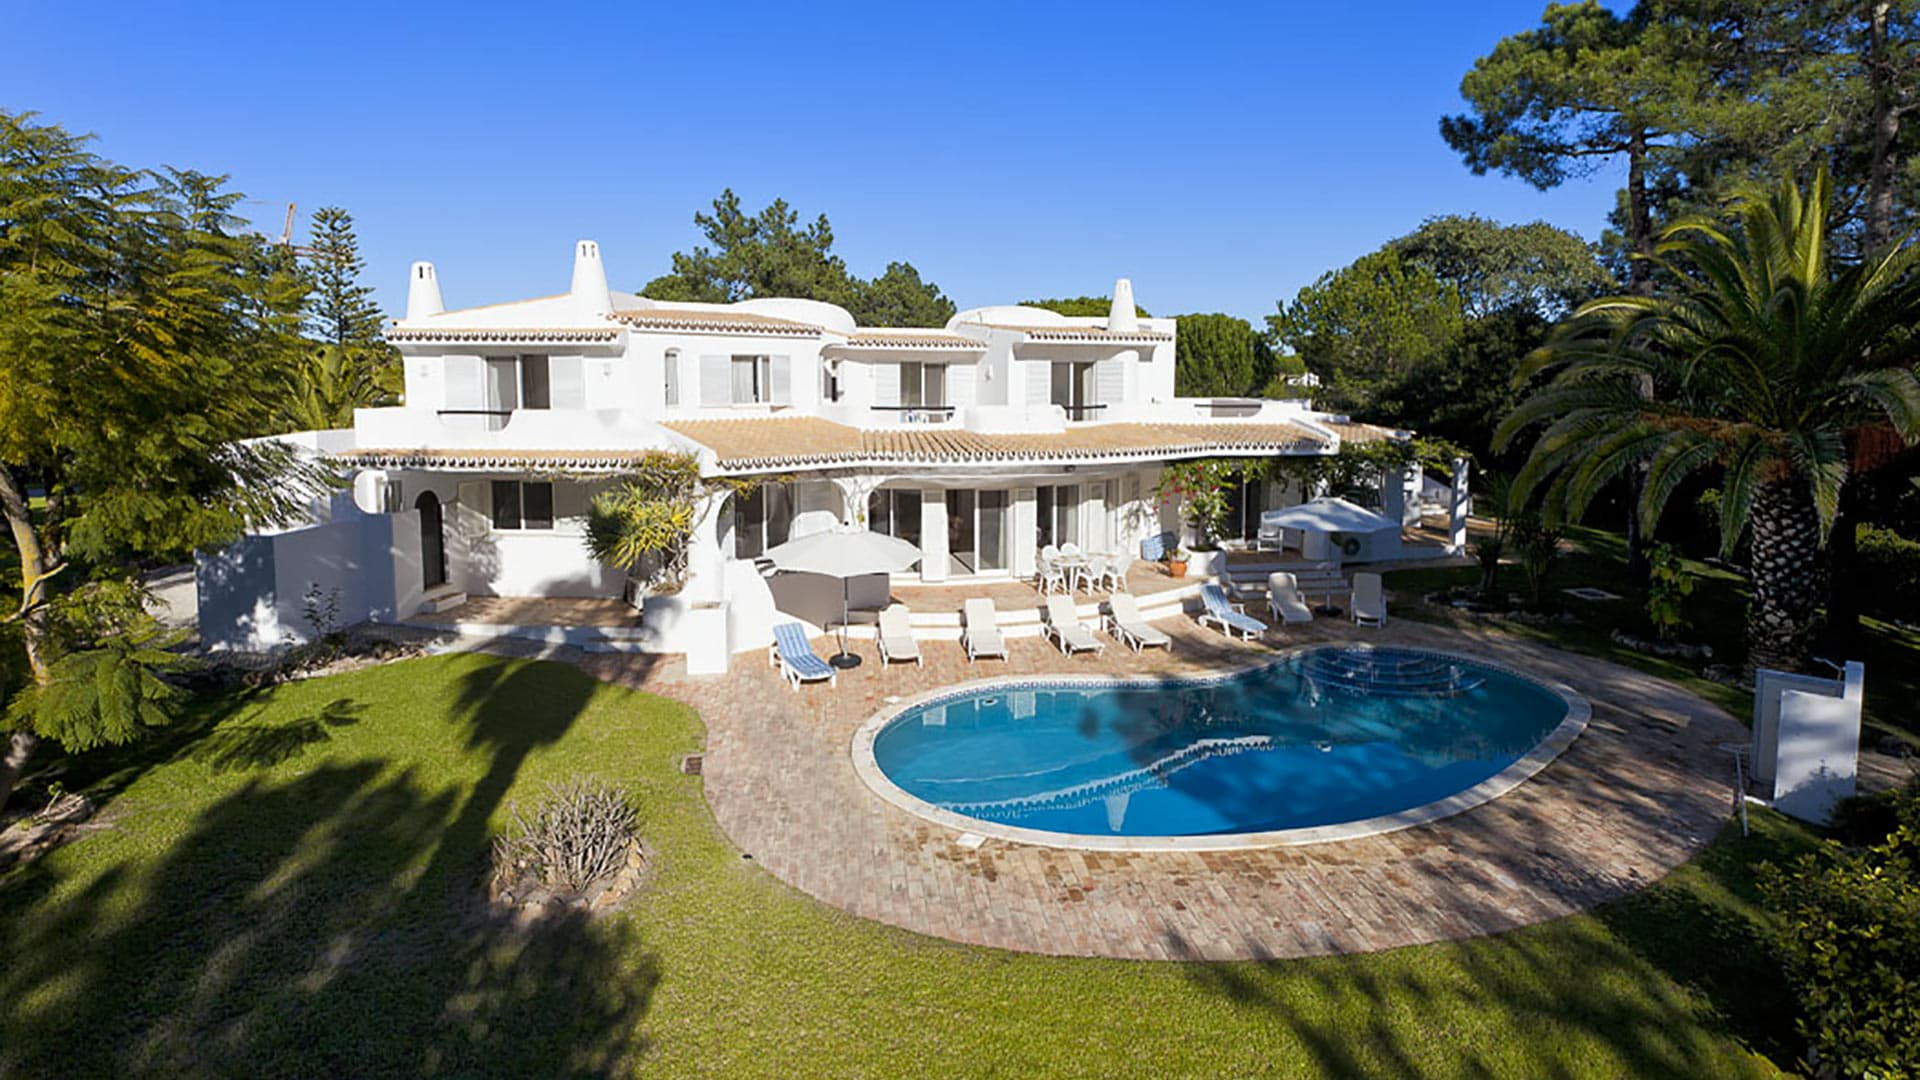 Villa Villa Silvana, Rental in Algarve